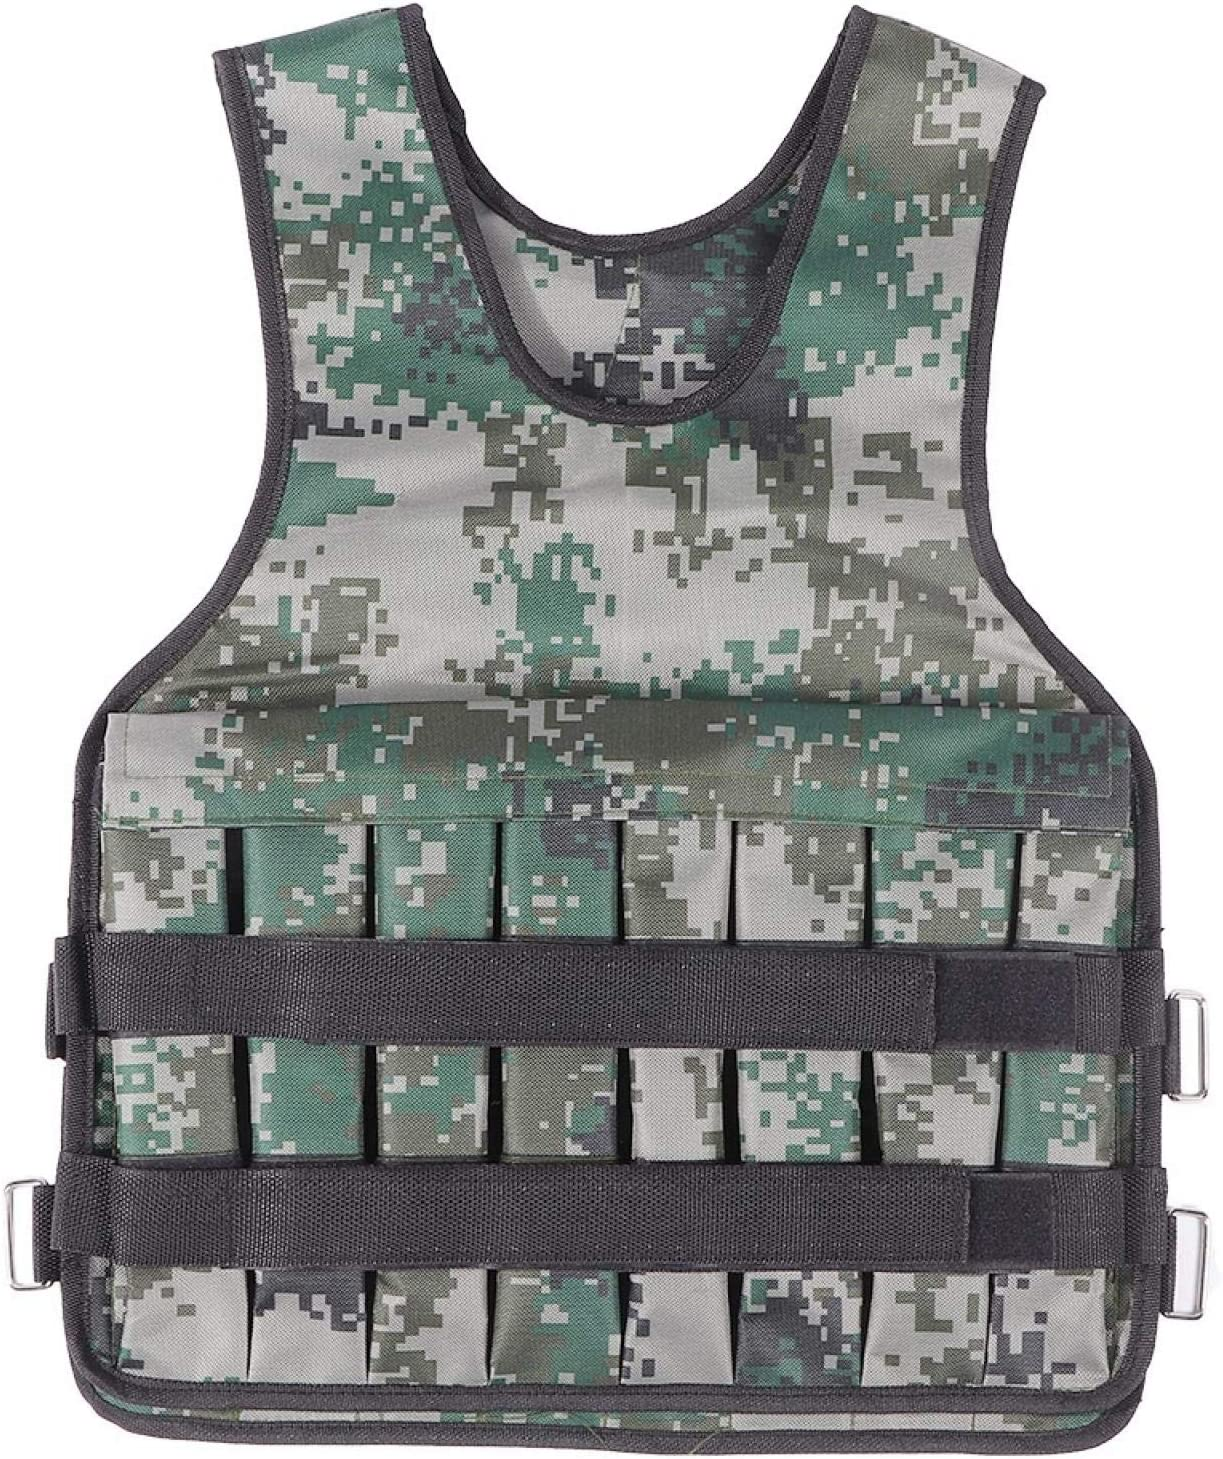 Exercise Vest 600D Now free shipping Over item handling ☆ Coated Fabric Weighted for Exe Fitness